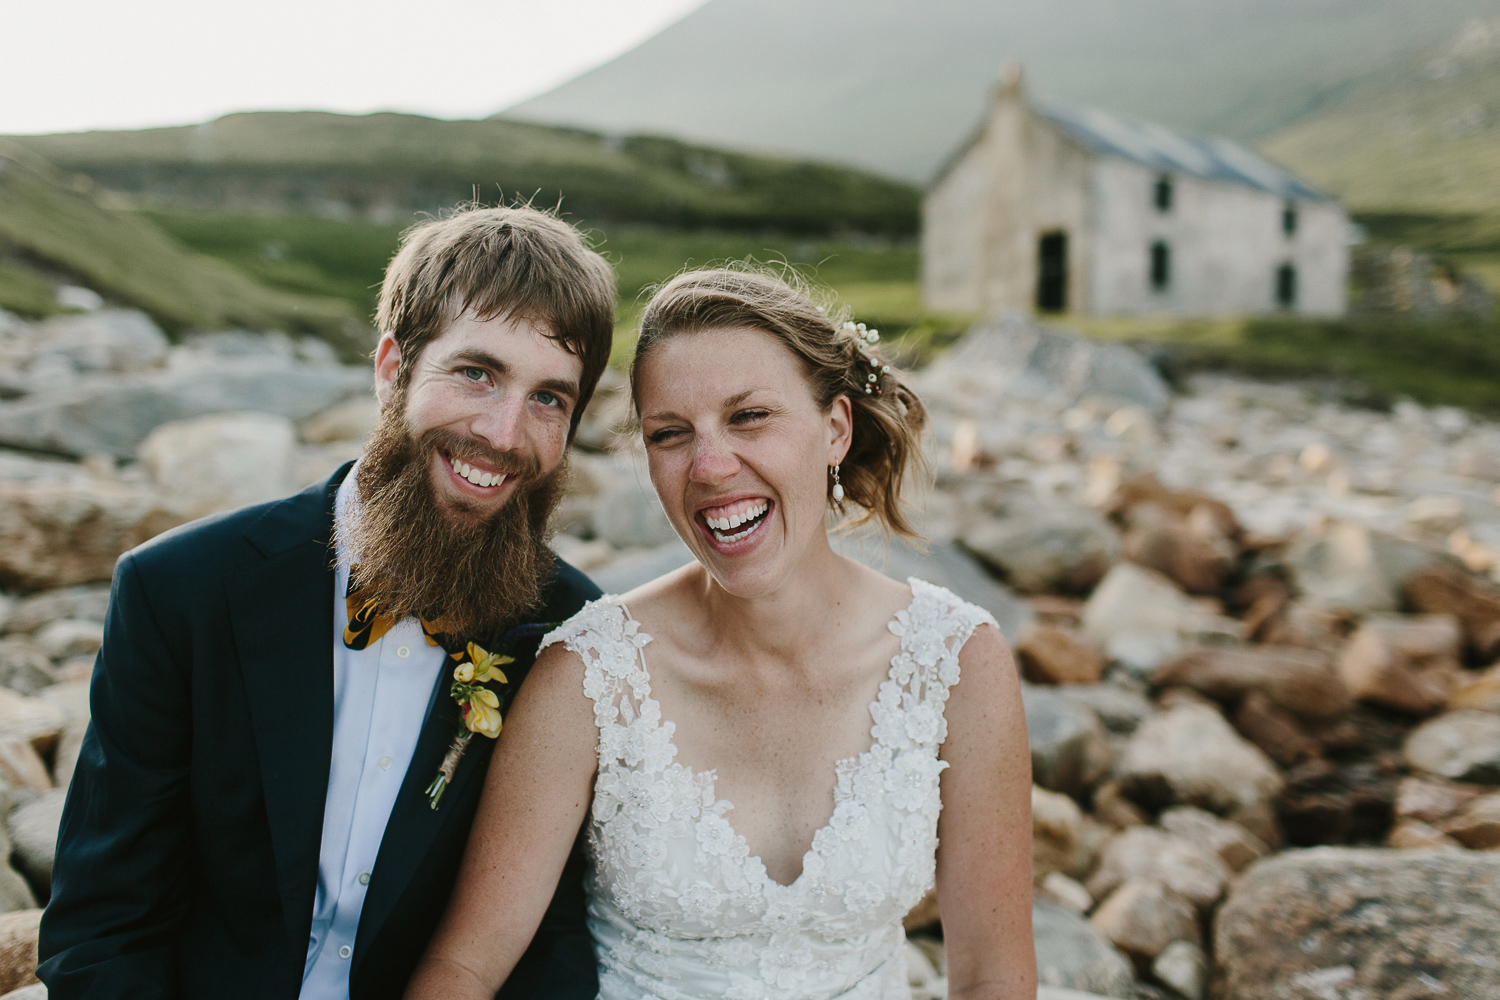 Achill-Island-Adventure-Wedding-Photographer-304.jpg